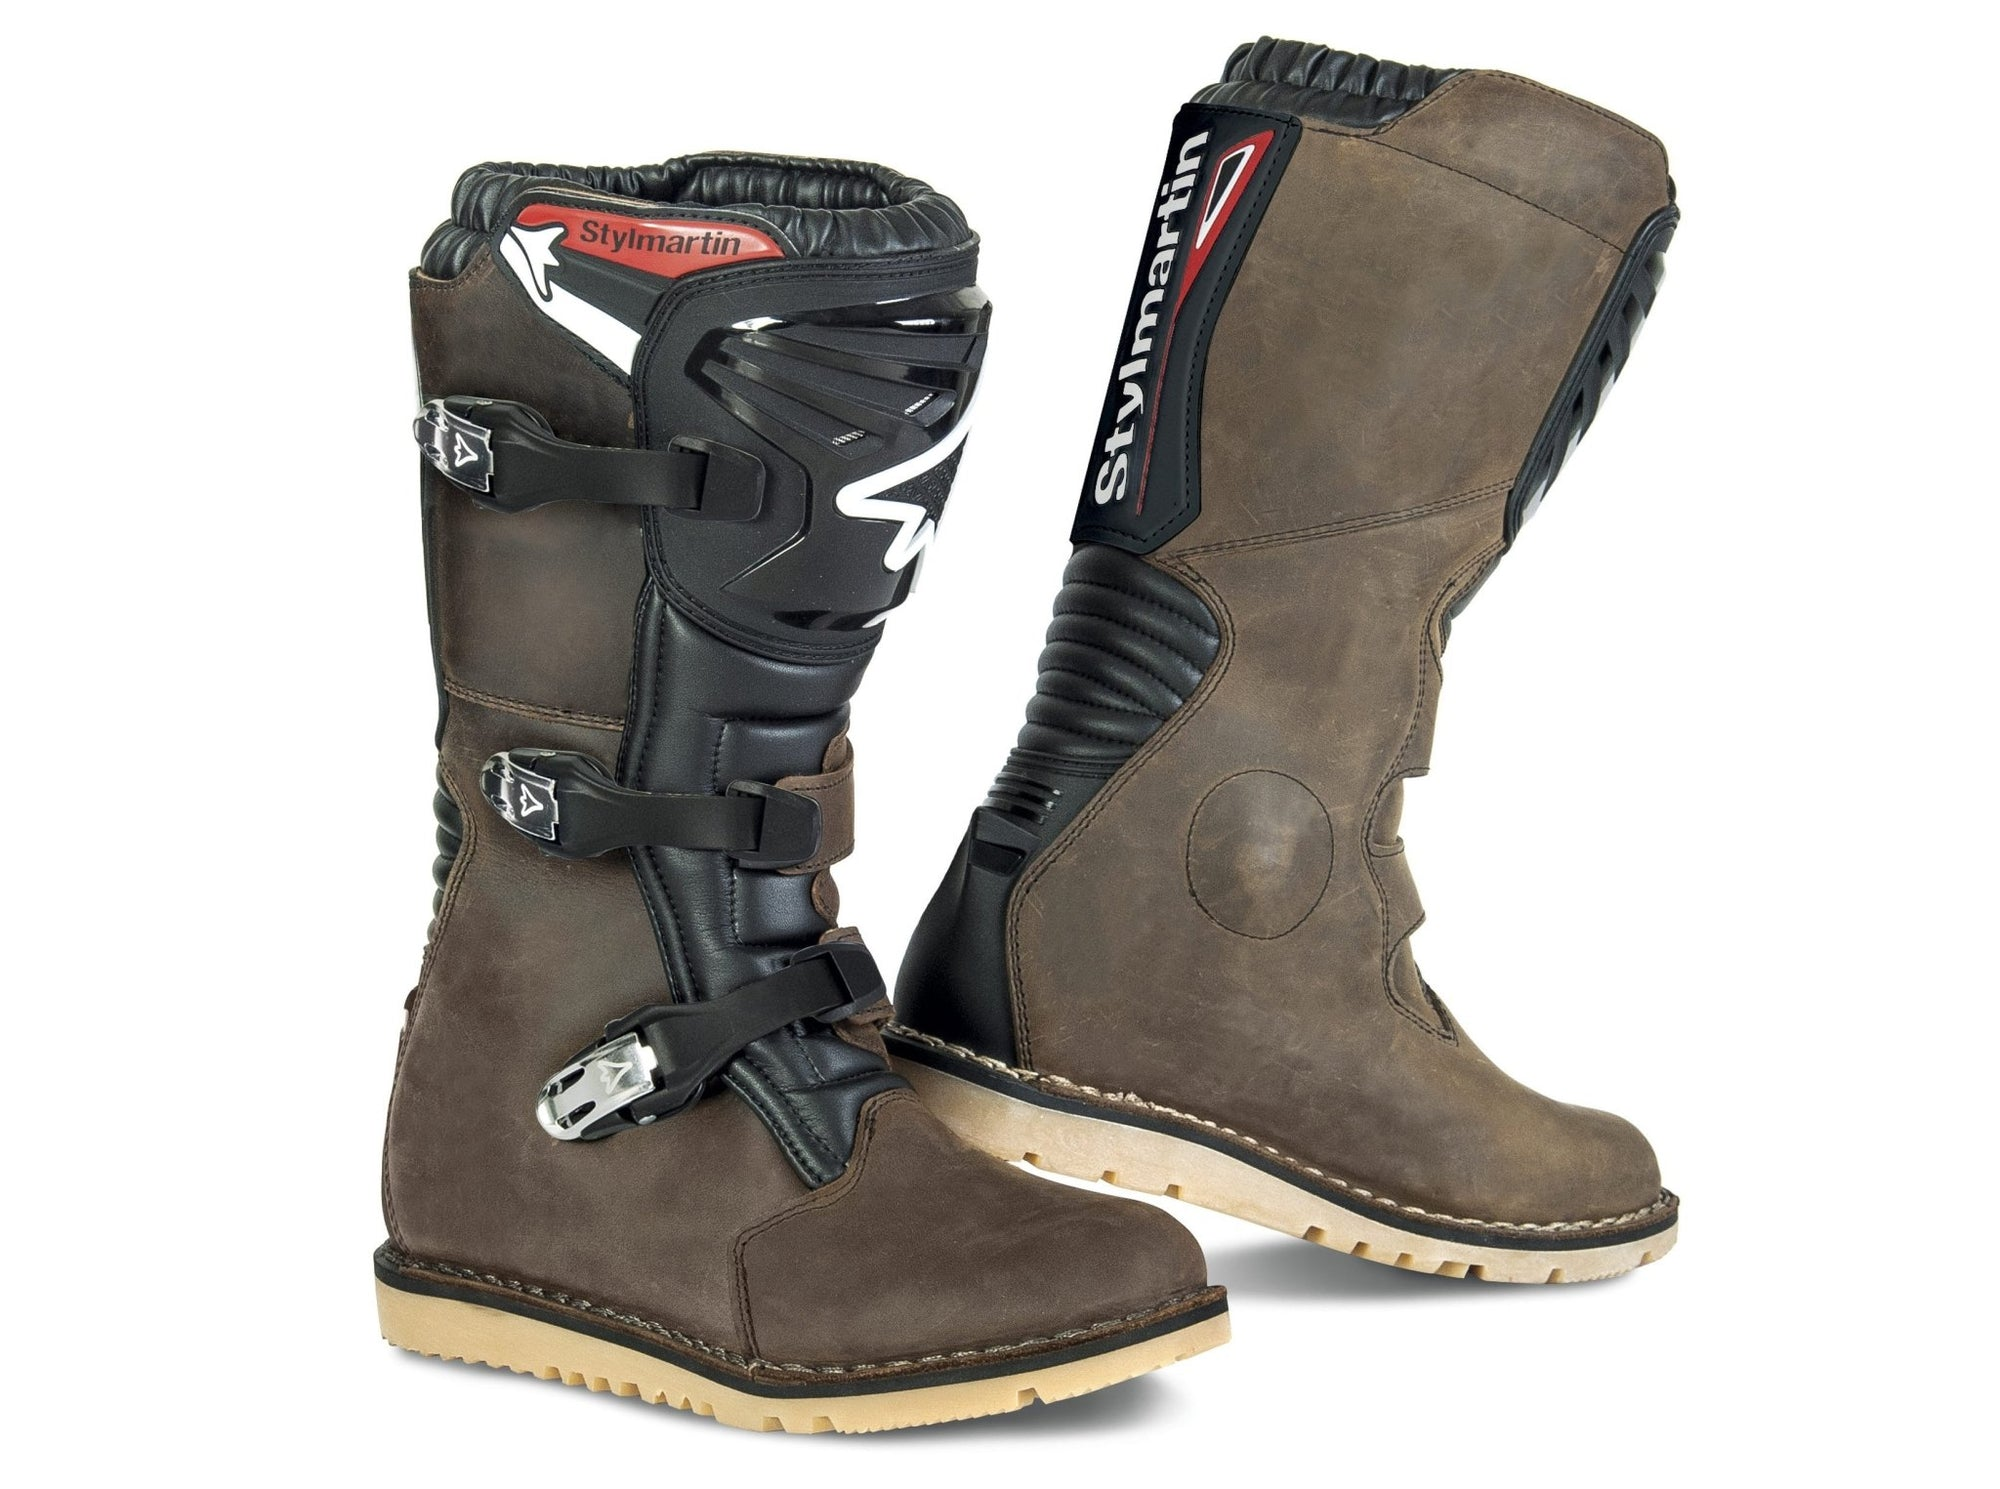 Stylmartin - Stylmartin Impact RS WP Off Road in Brown - Boots - Salt Flats Clothing